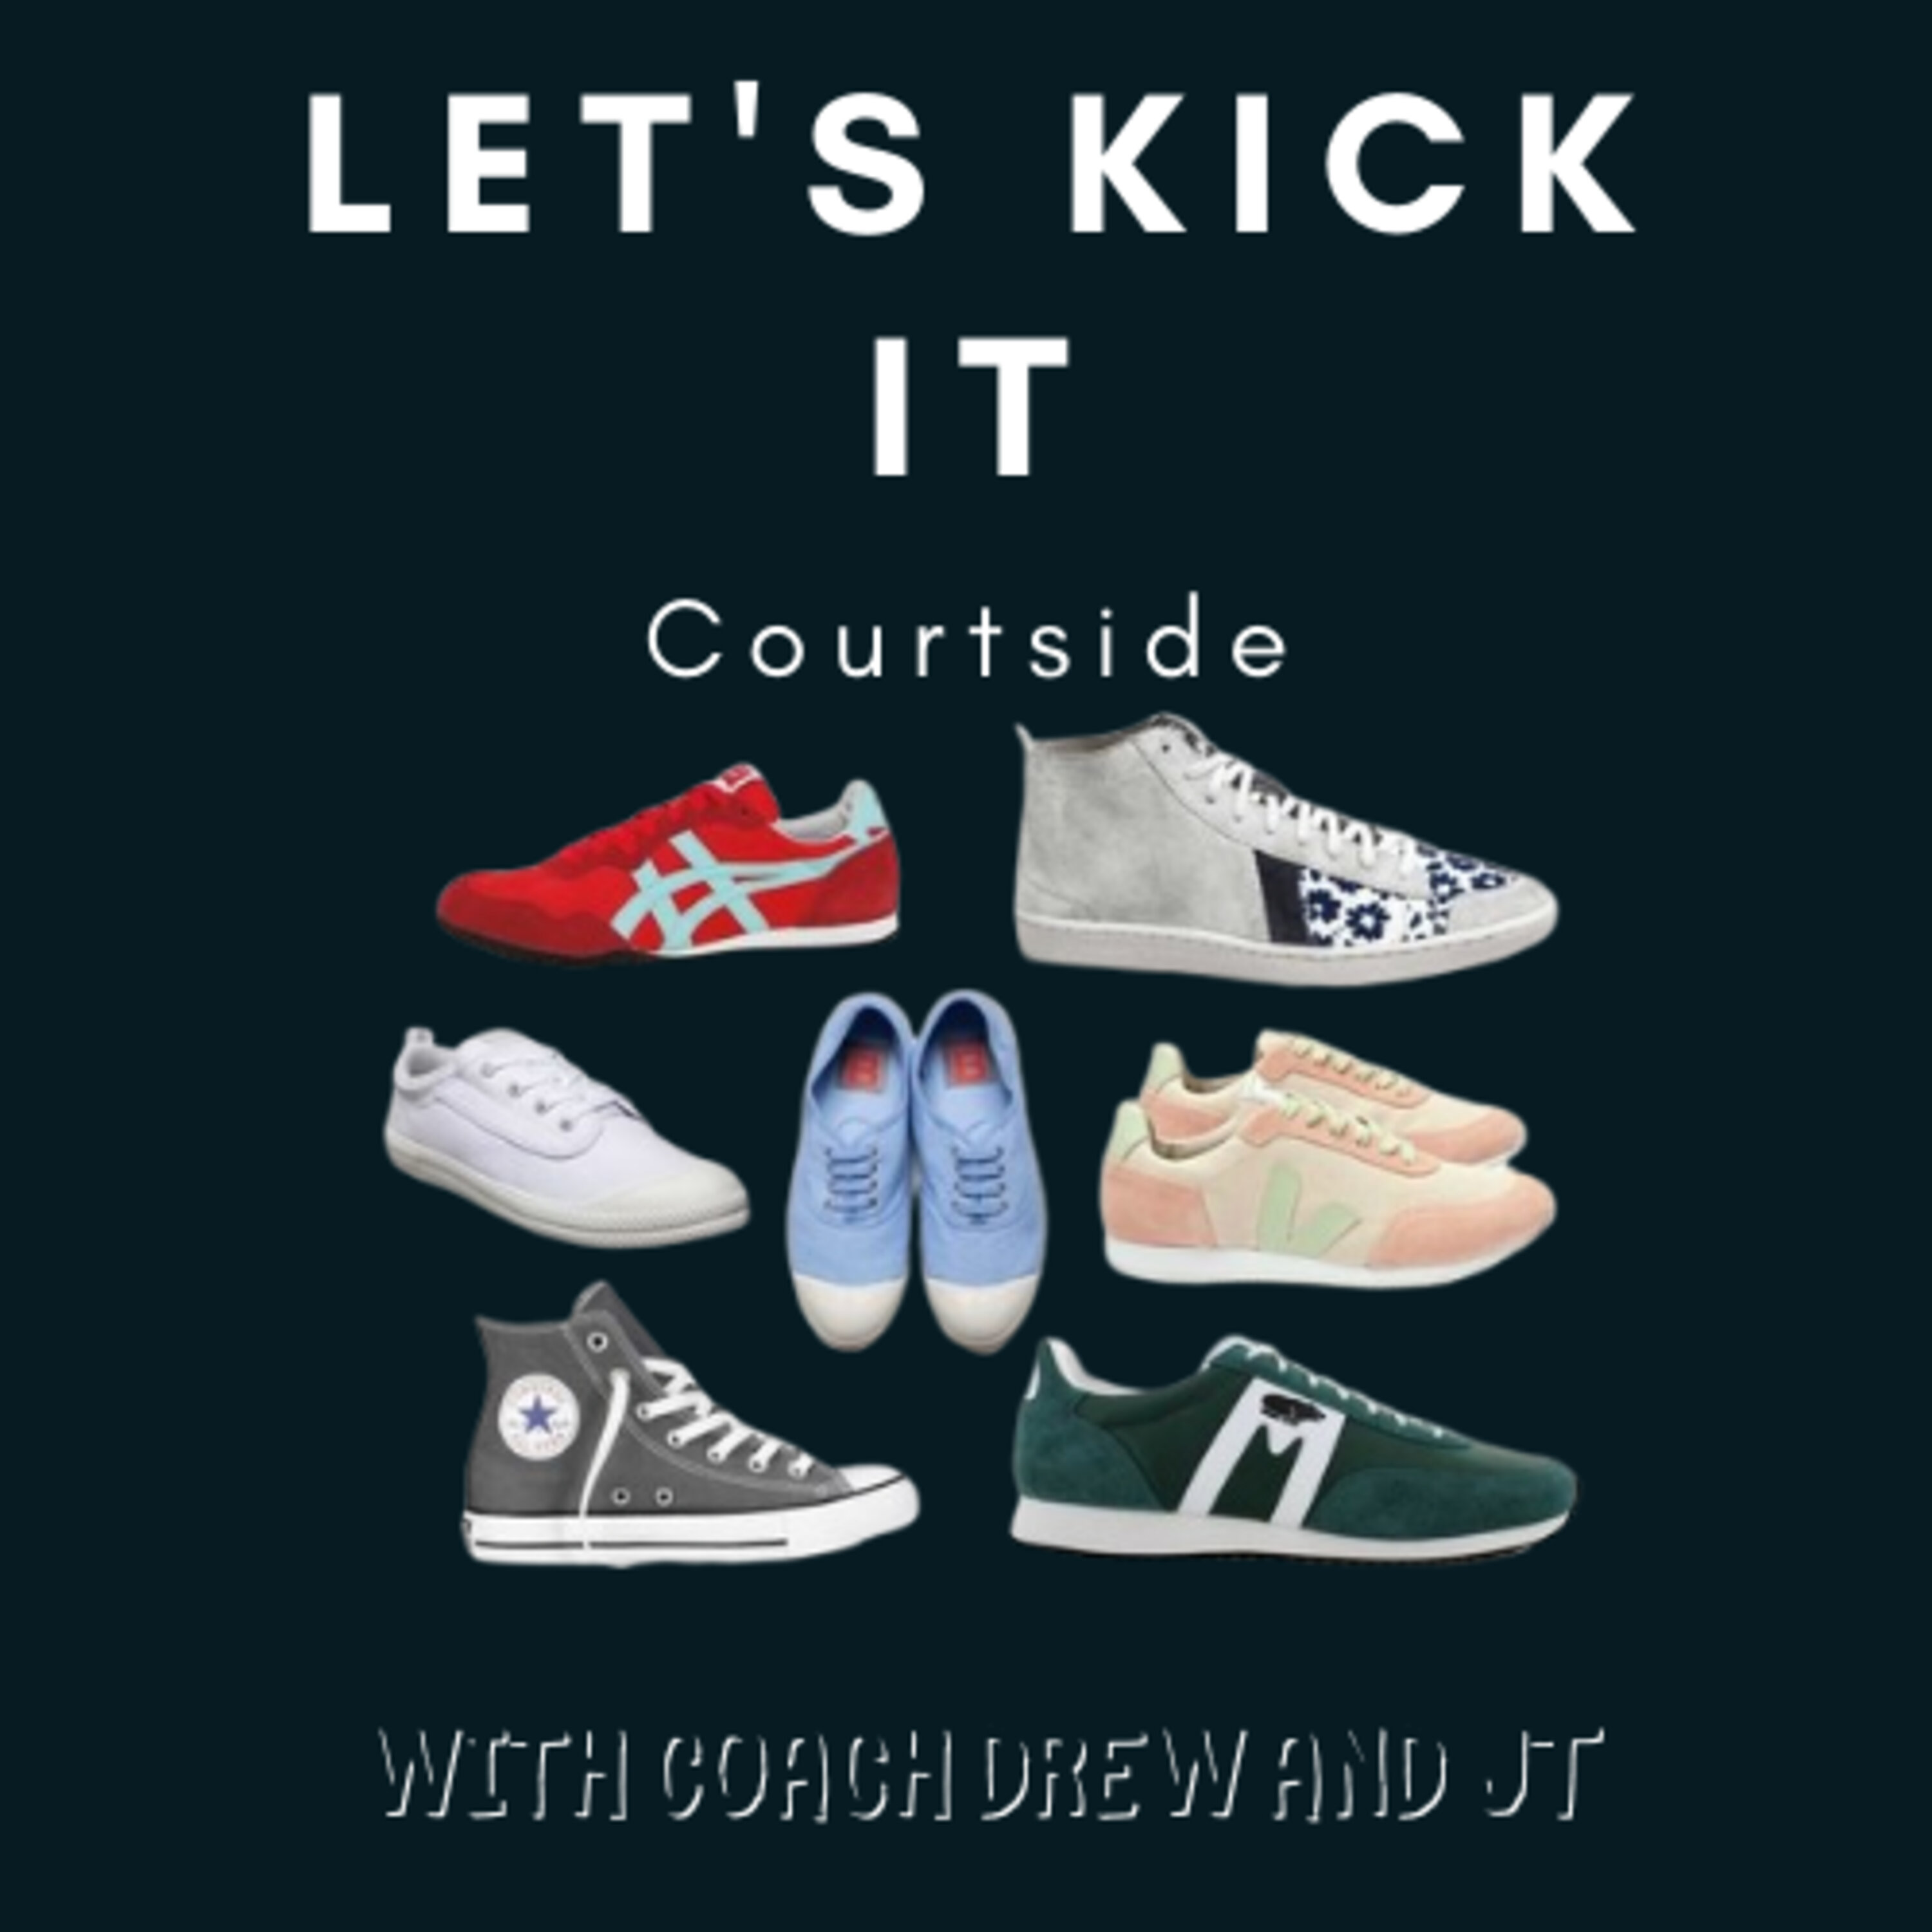 Let's Kick It  - Courtside | Holiday Season